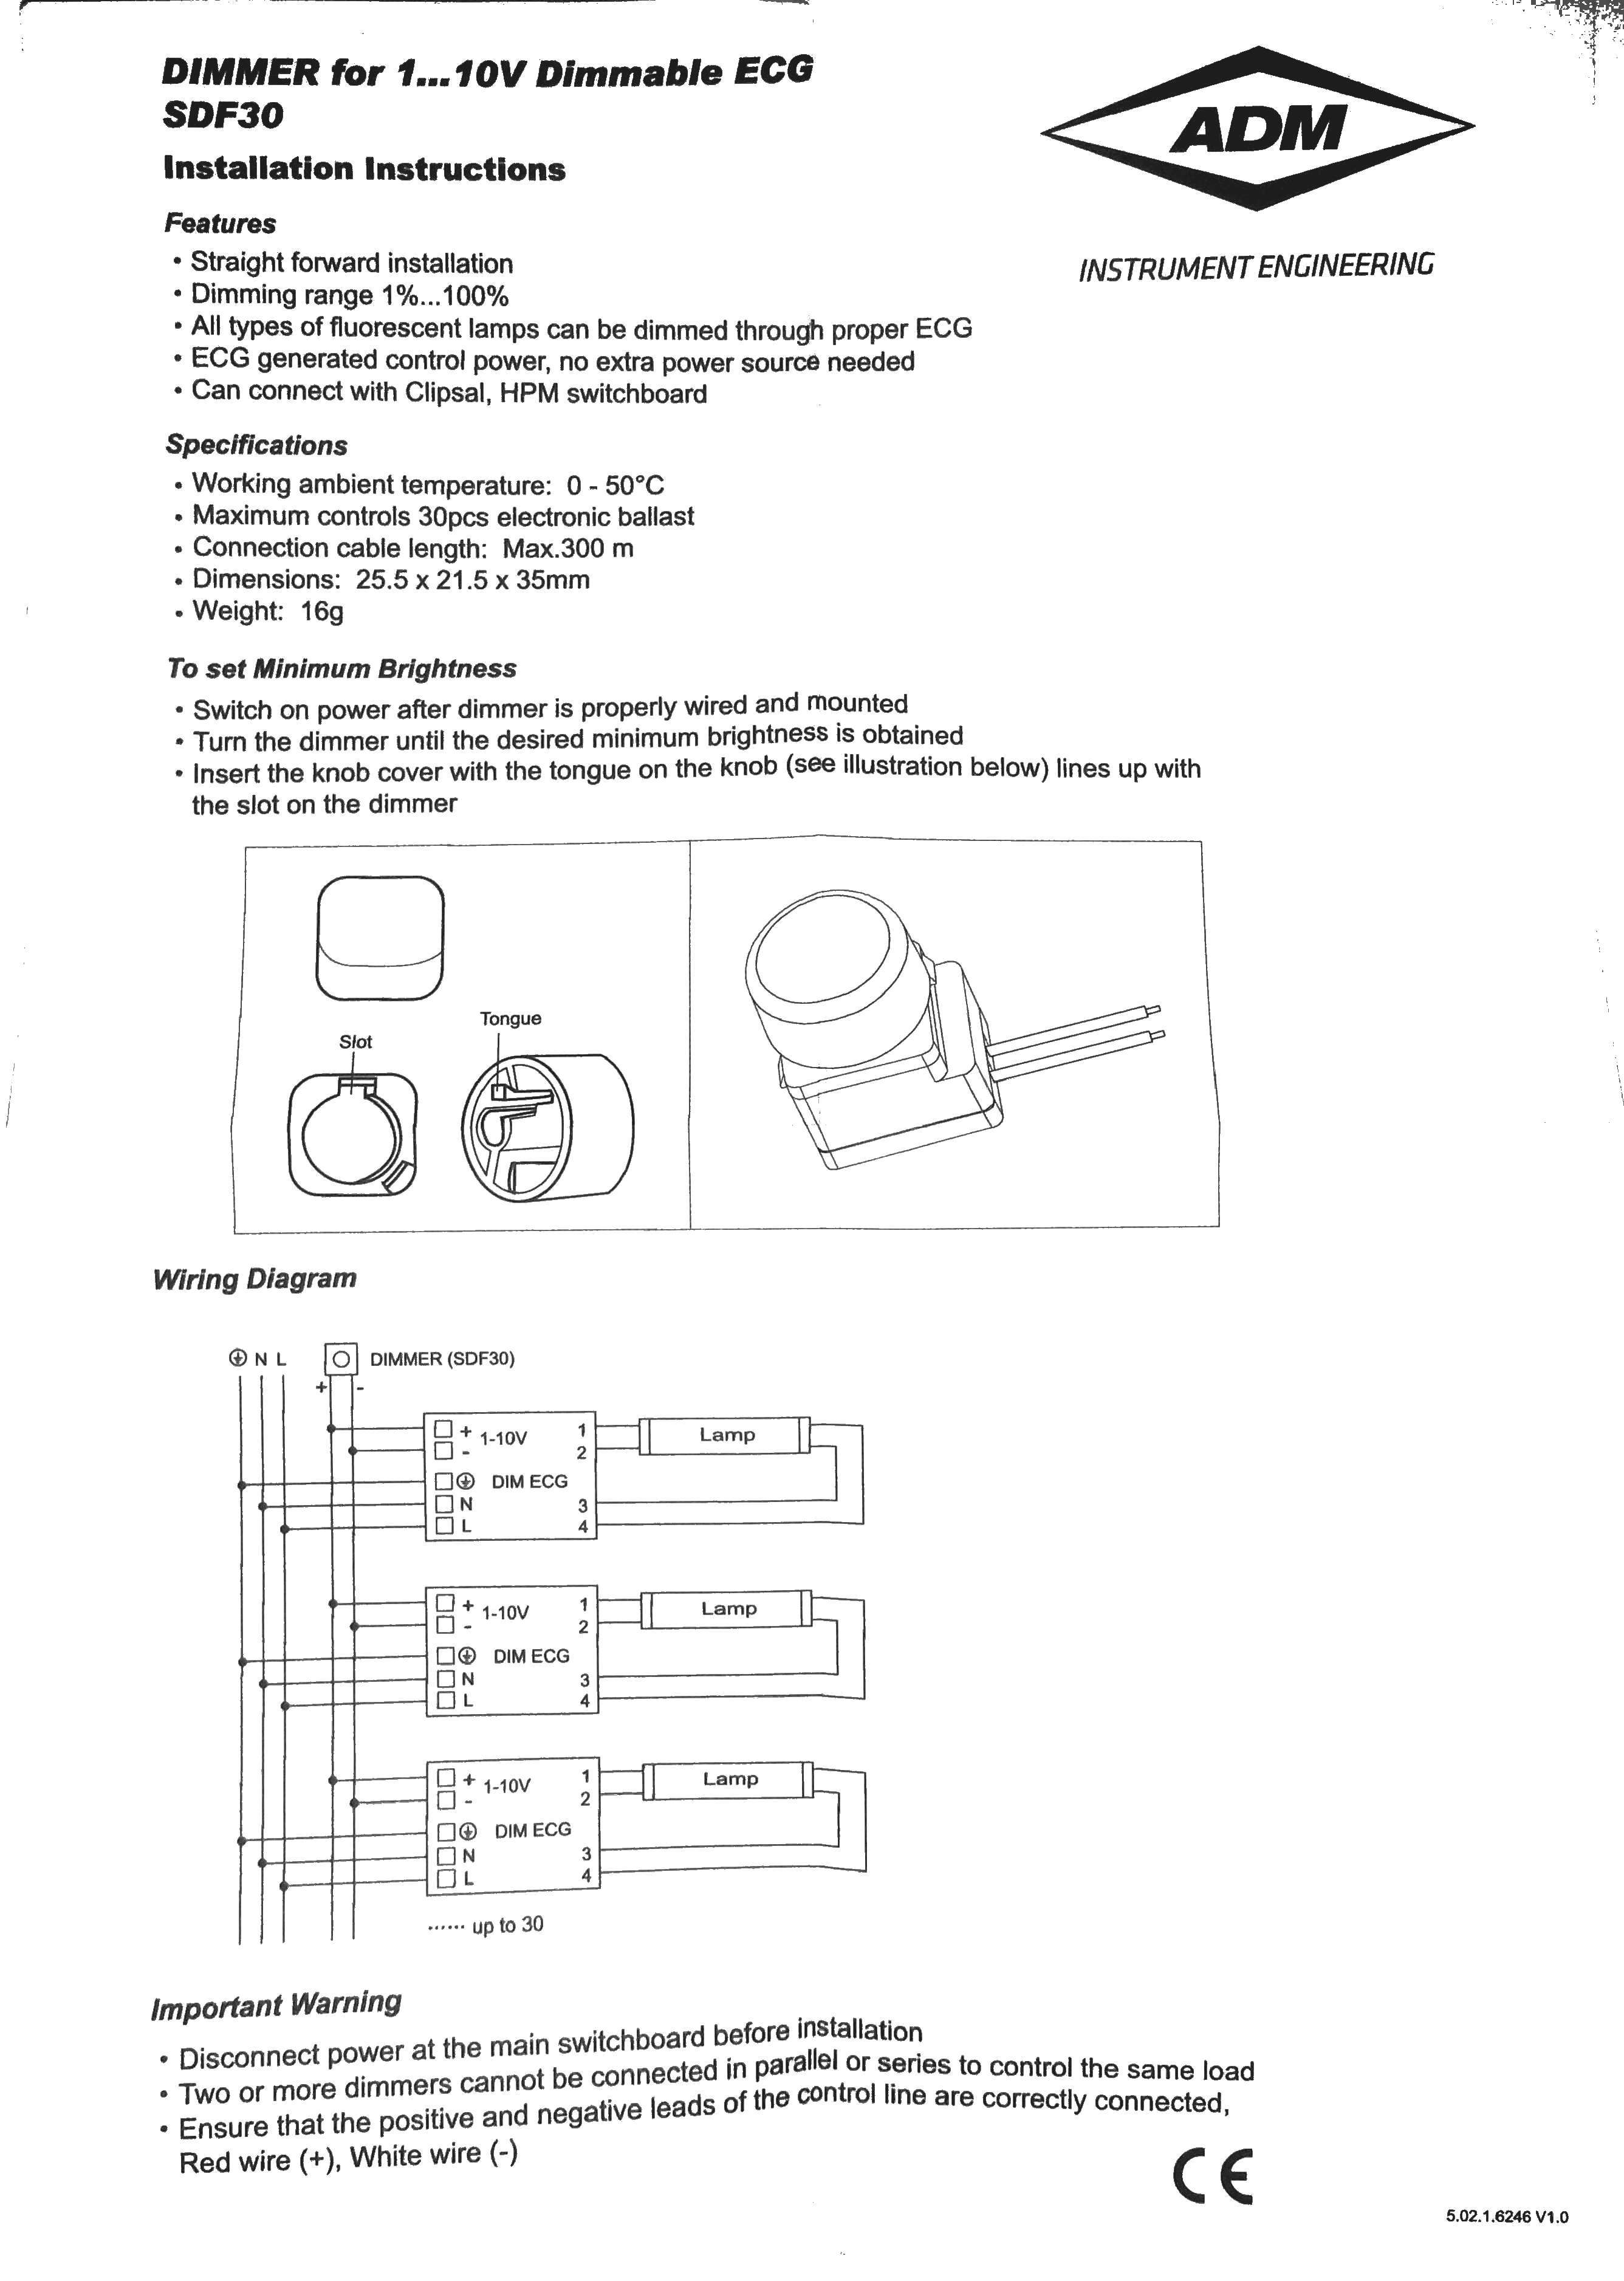 hpm light switch wiring diagram australia ibanez support diagrams analogue 1 10v dimming volka lighting pty ltd